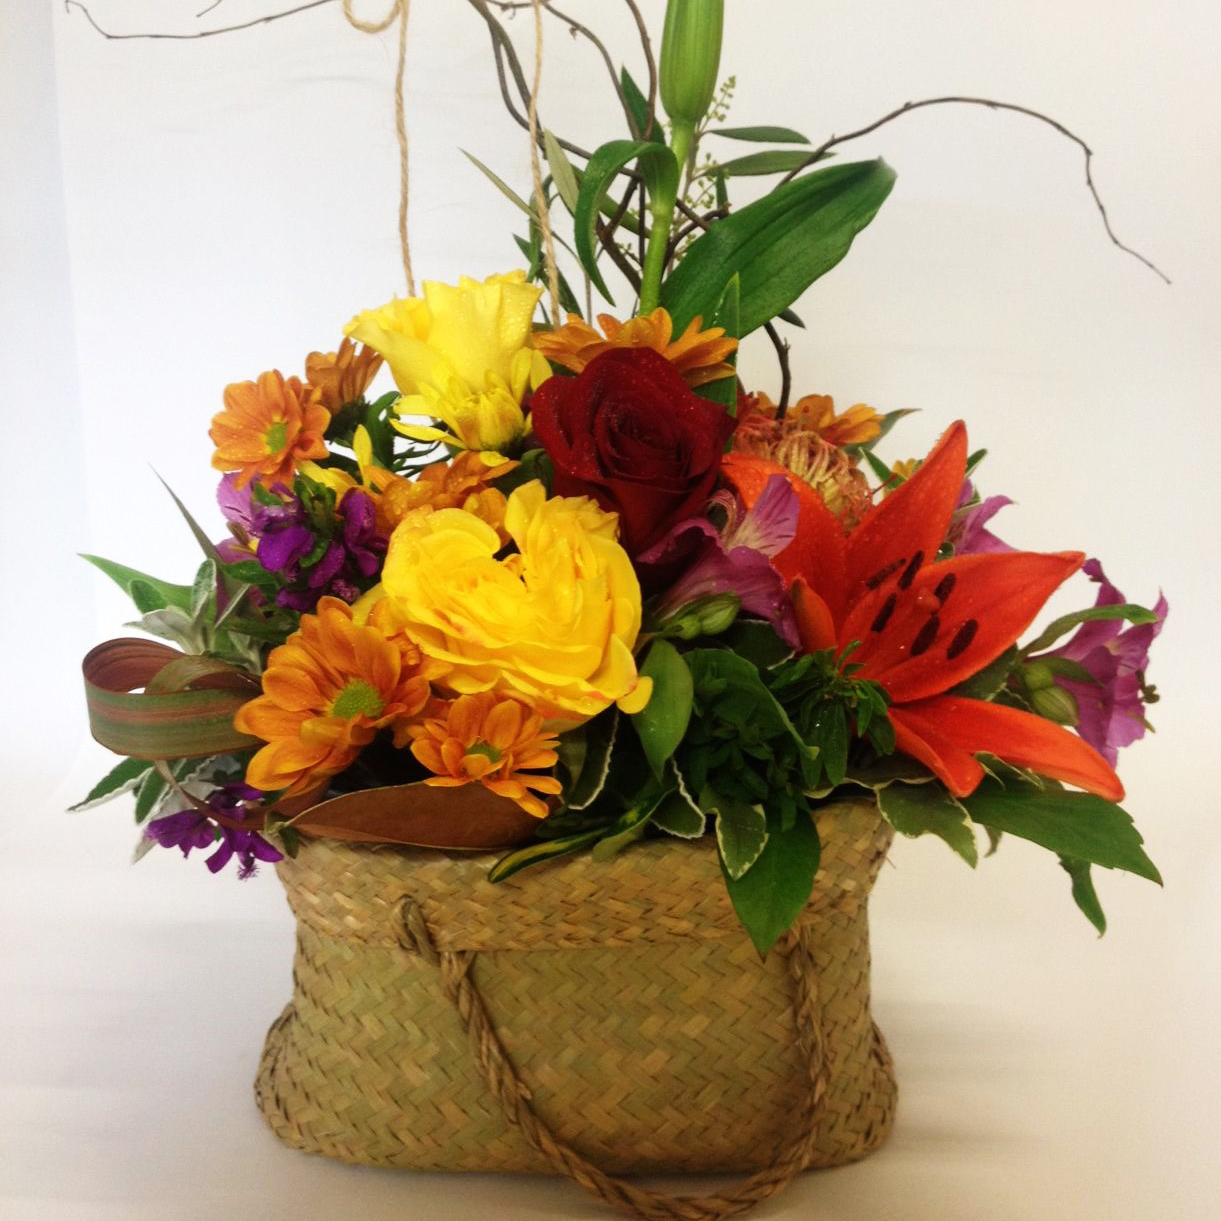 This is our most popular design. Lovely and Bright mix of flowers. #The flower photo is an indication, flowers may change over the seasons.